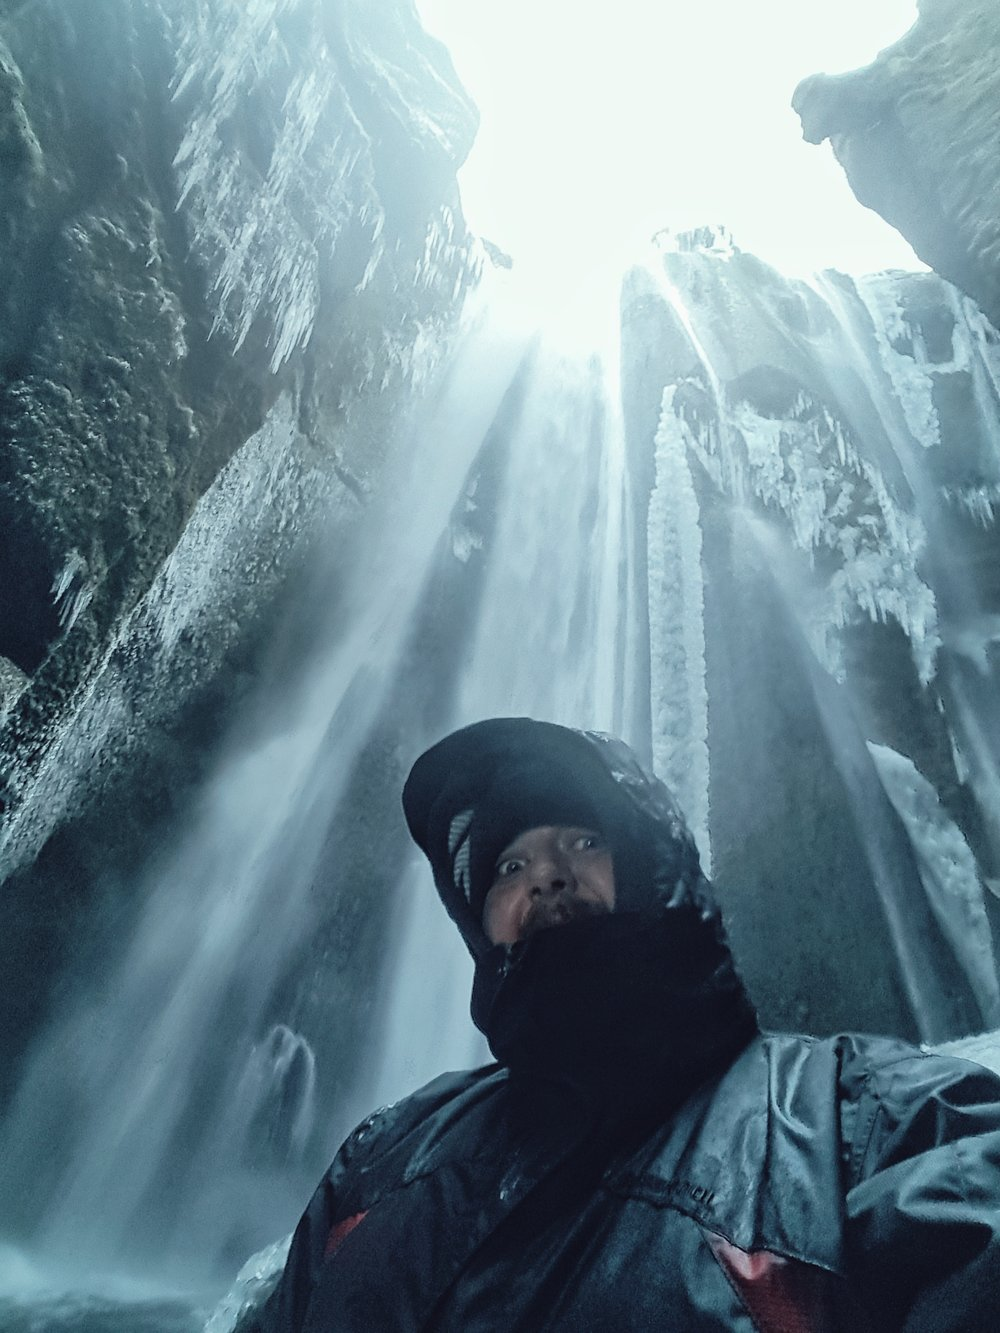 Iceland. snow. travel. adventure. photography. trip. epic landscape. snow. cold. freezing. sunrise. underwater selfie.jpg